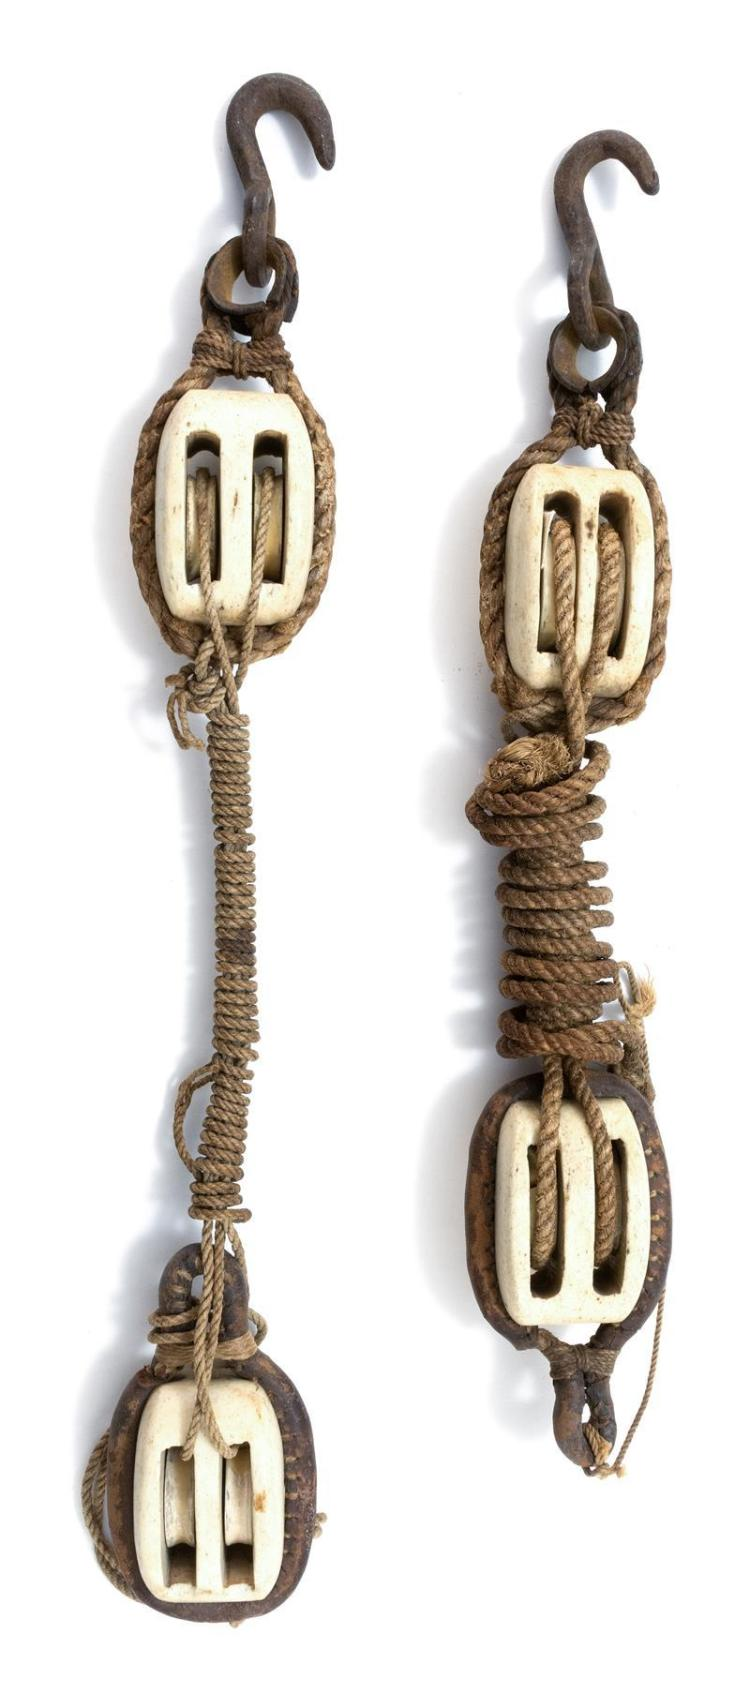 TWO PAIRS OF WHALEBONE DOUBLE-BLOCKS With original iron hooks and grommets, and ropework attachments. One with leather-covered rope....